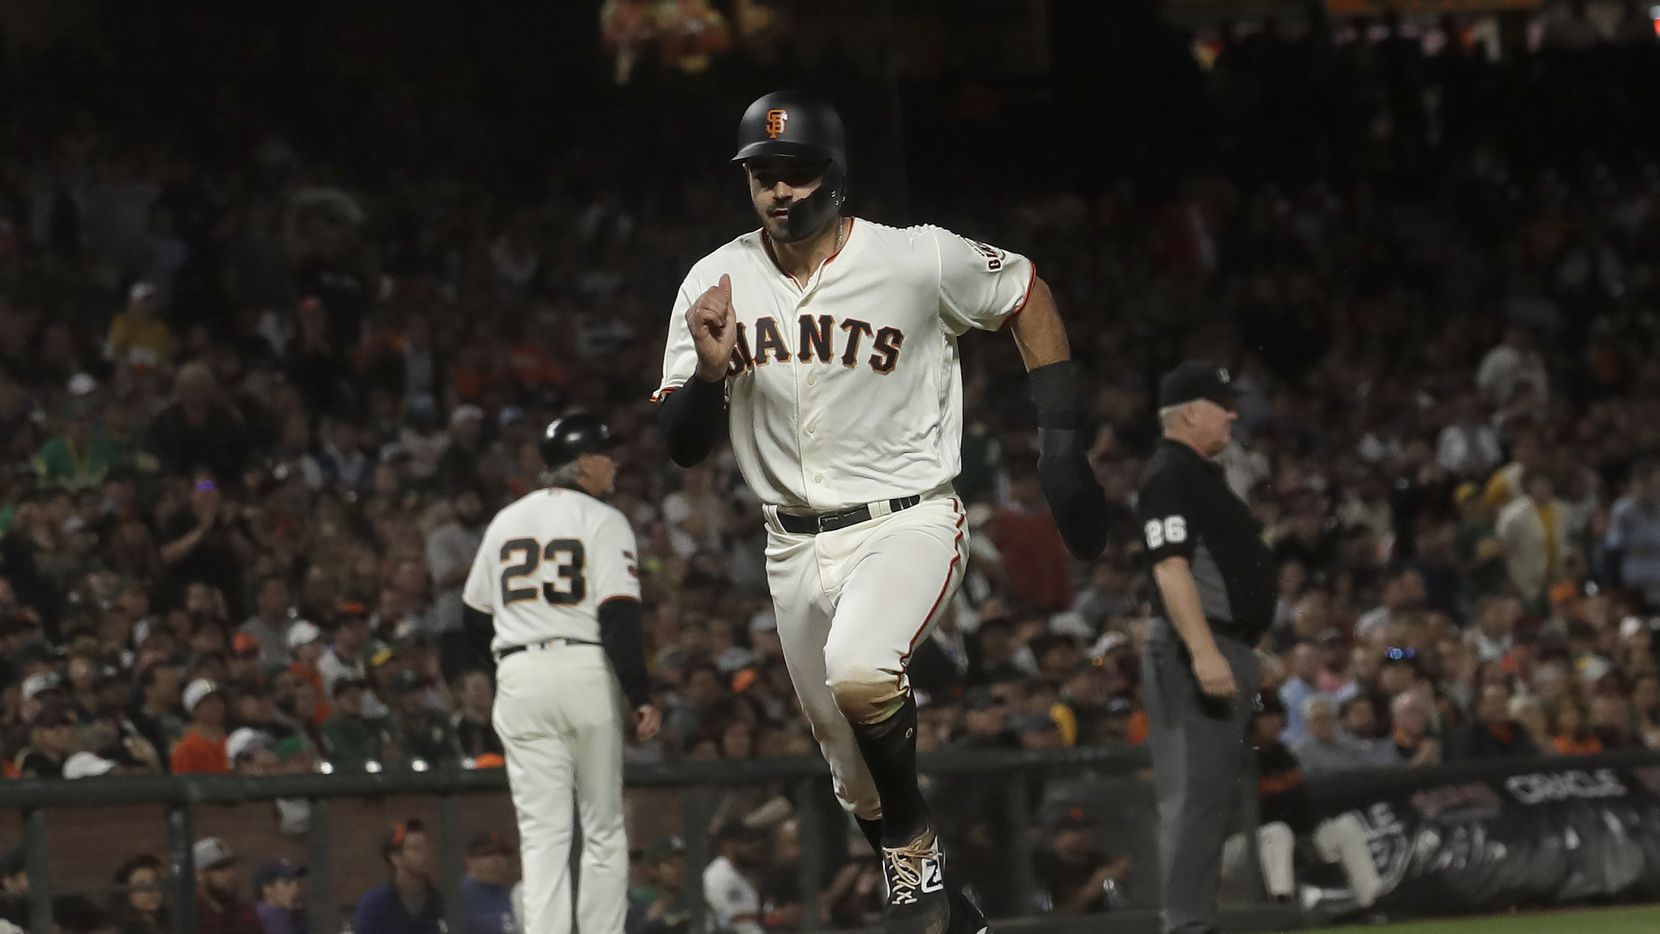 San Francisco Giants' Aramis Garcia scores against the Oakland Athletics during the seventh inning of a baseball game in San Francisco, Tuesday, Aug. 13, 2019.